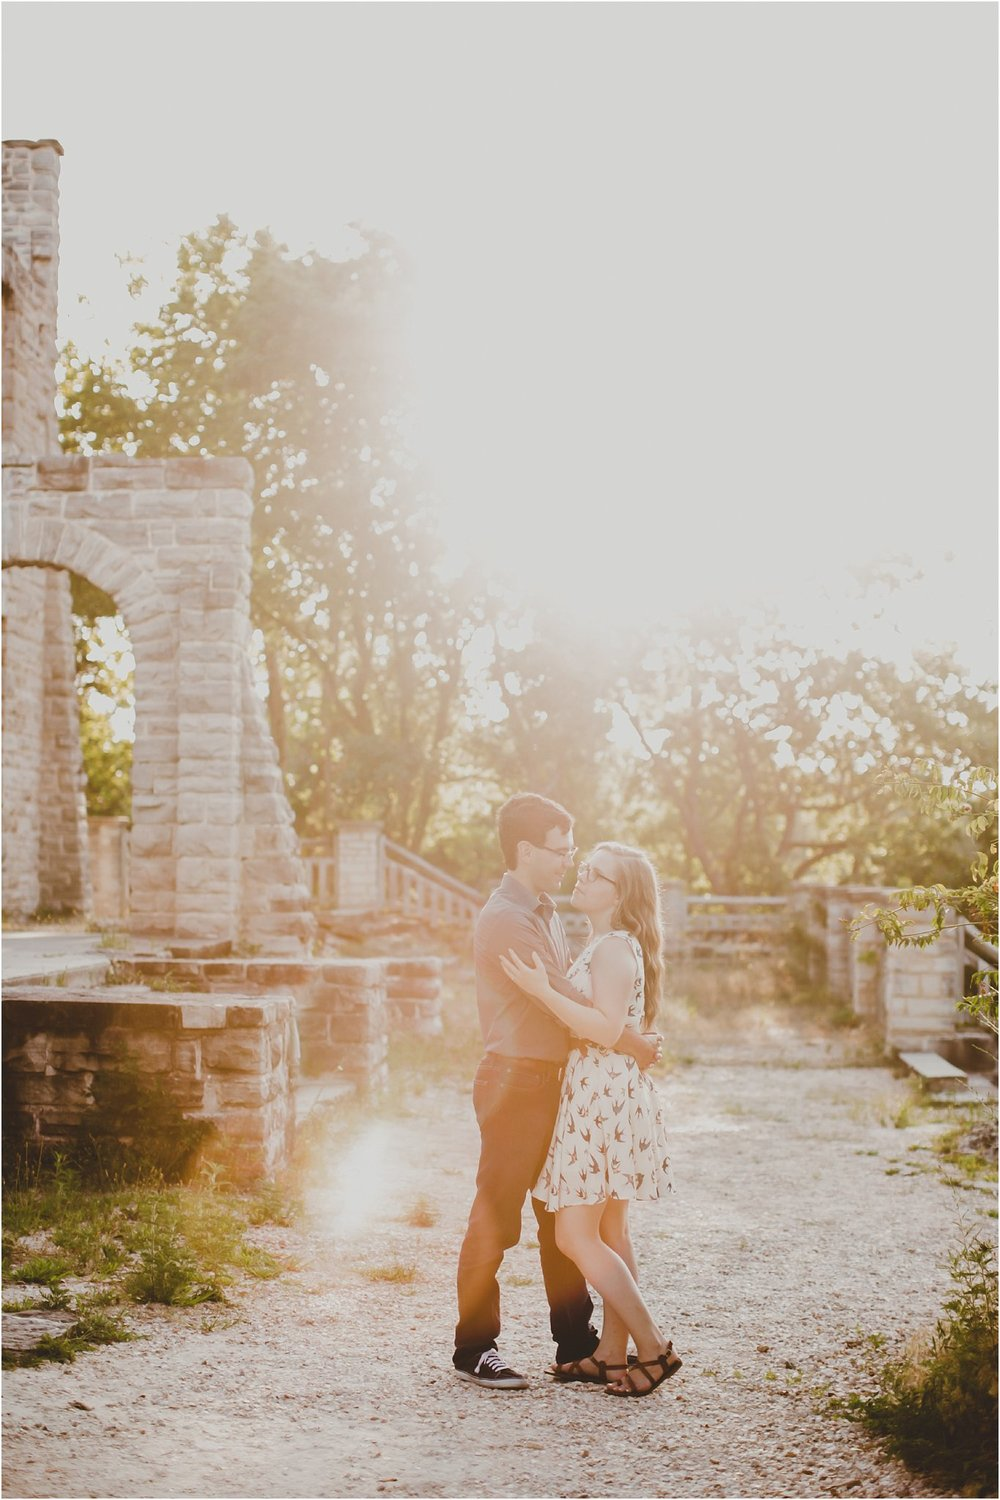 PattengalePhotography_Laura&Ryan_HaHaTonka_StatePark_Lake_of_the_Ozarks_EngagementSession_Adventure_Hiking_boho_Outdoor_Summertime_Style_Missouri_WeddingPhotographer_0032.jpg